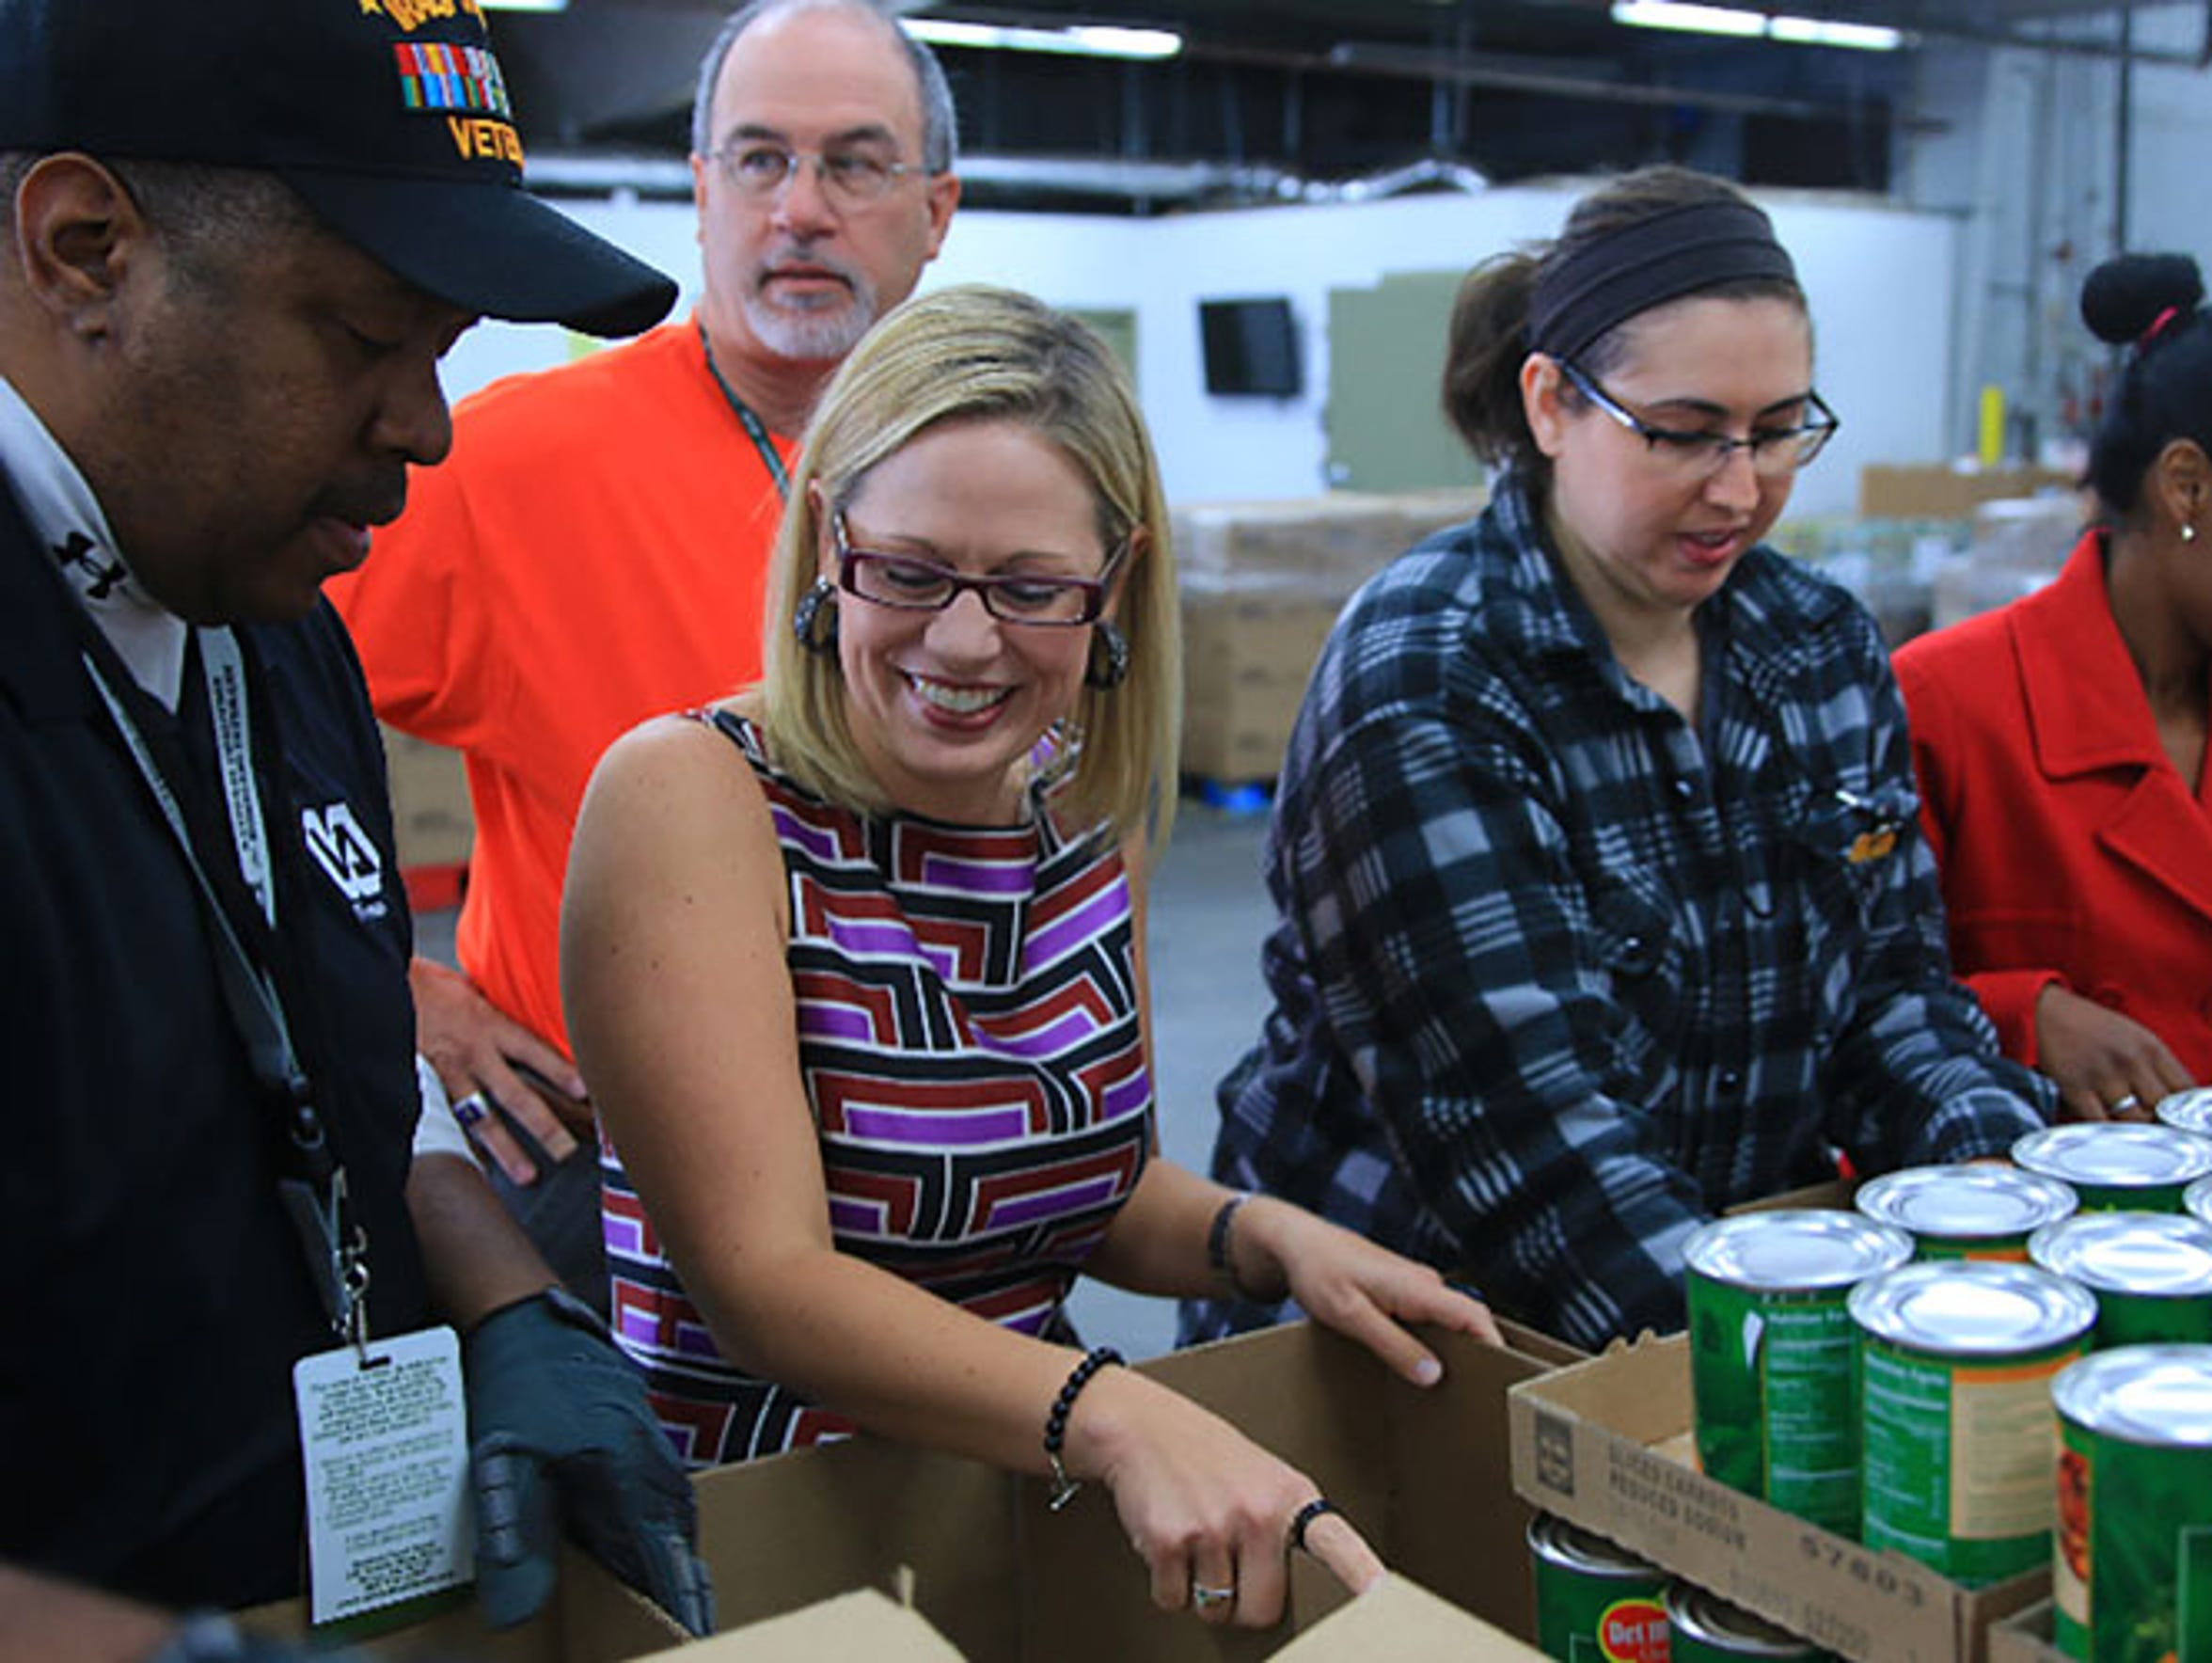 U.S. Rep. Kyrsten Sinema packs food boxes at United